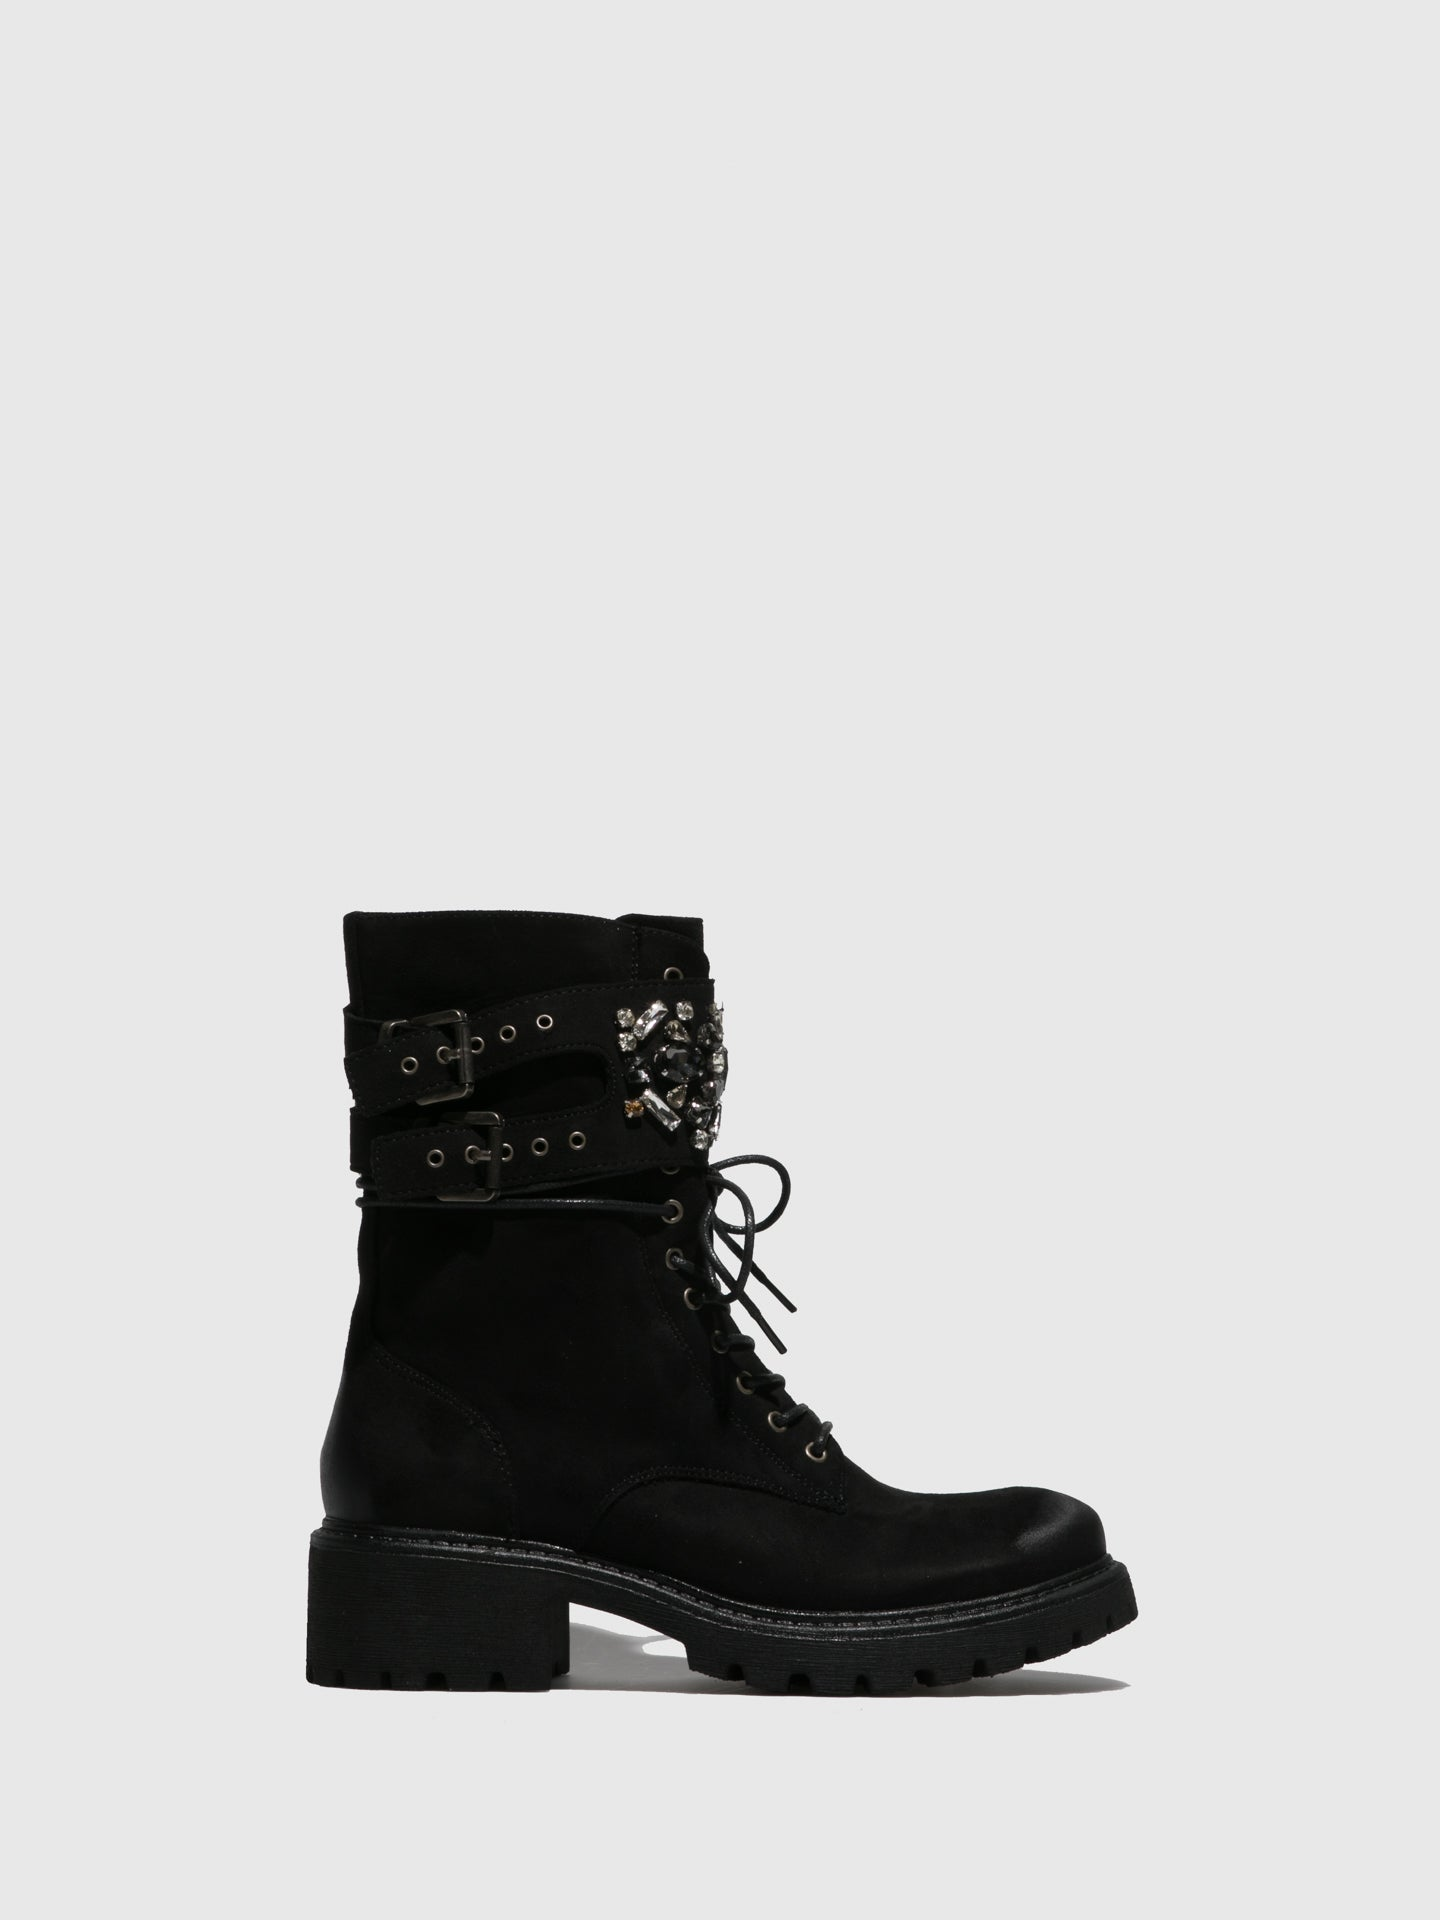 Francesco Milano Black Buckle Boots